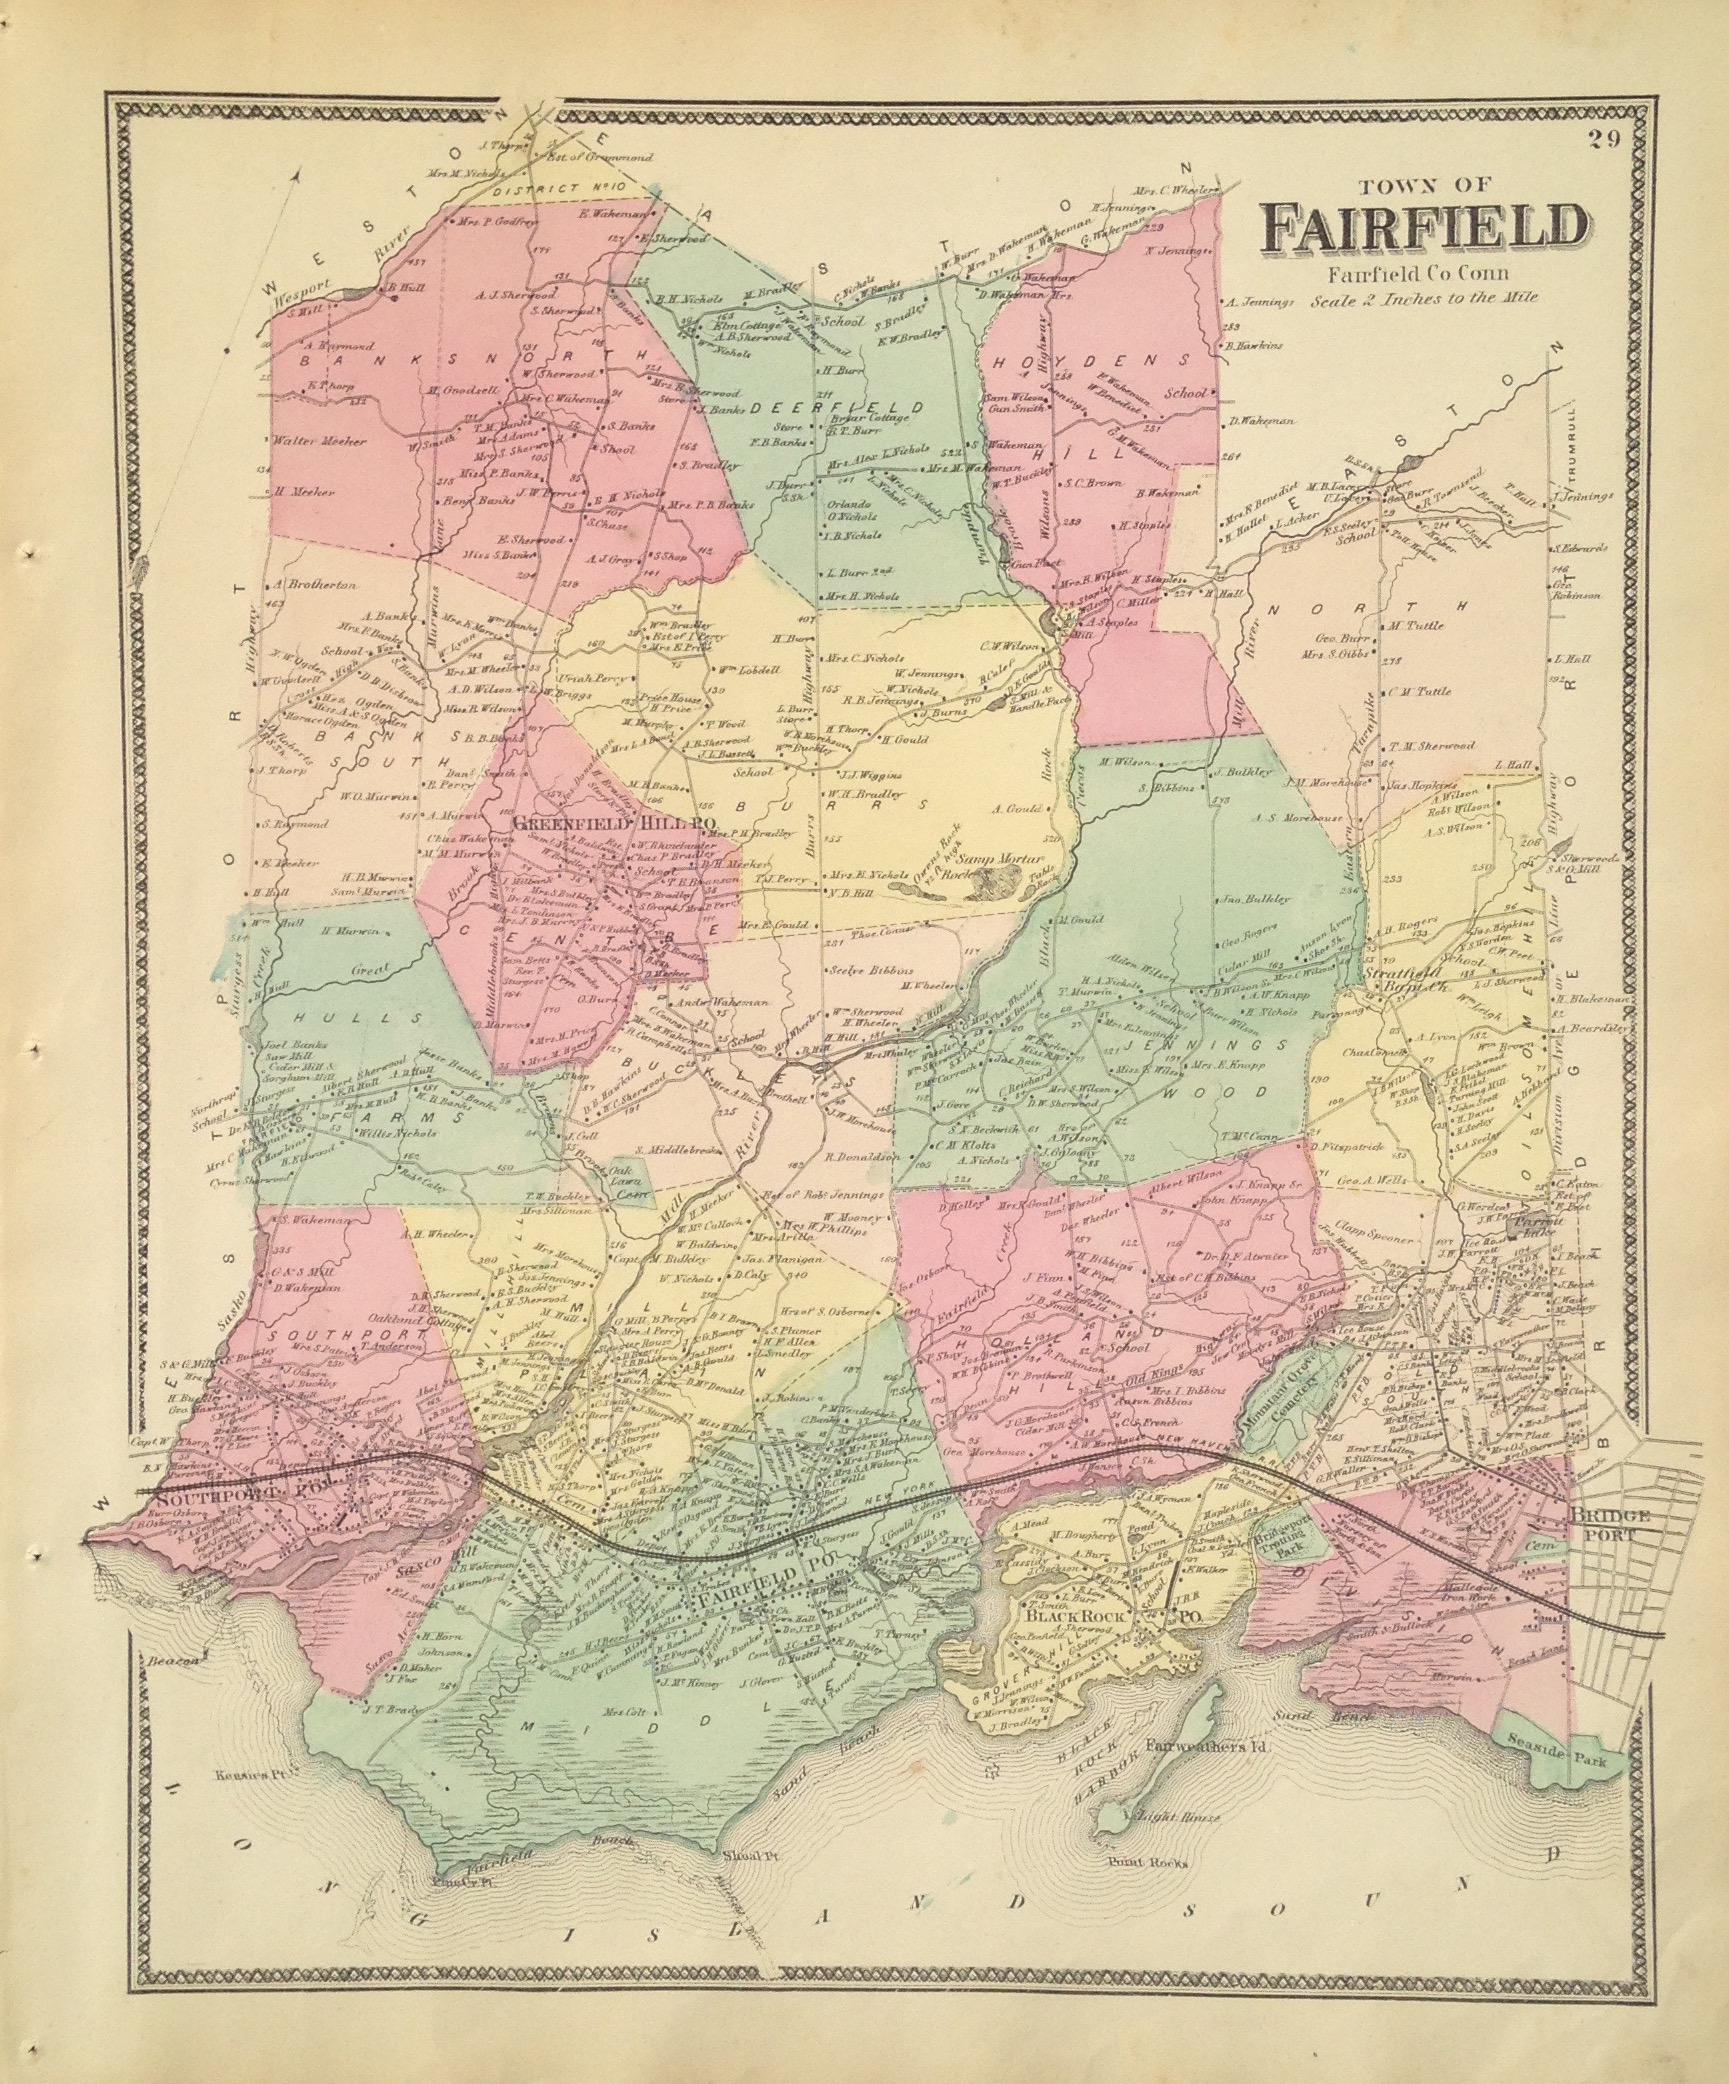 Fairfield, CT map